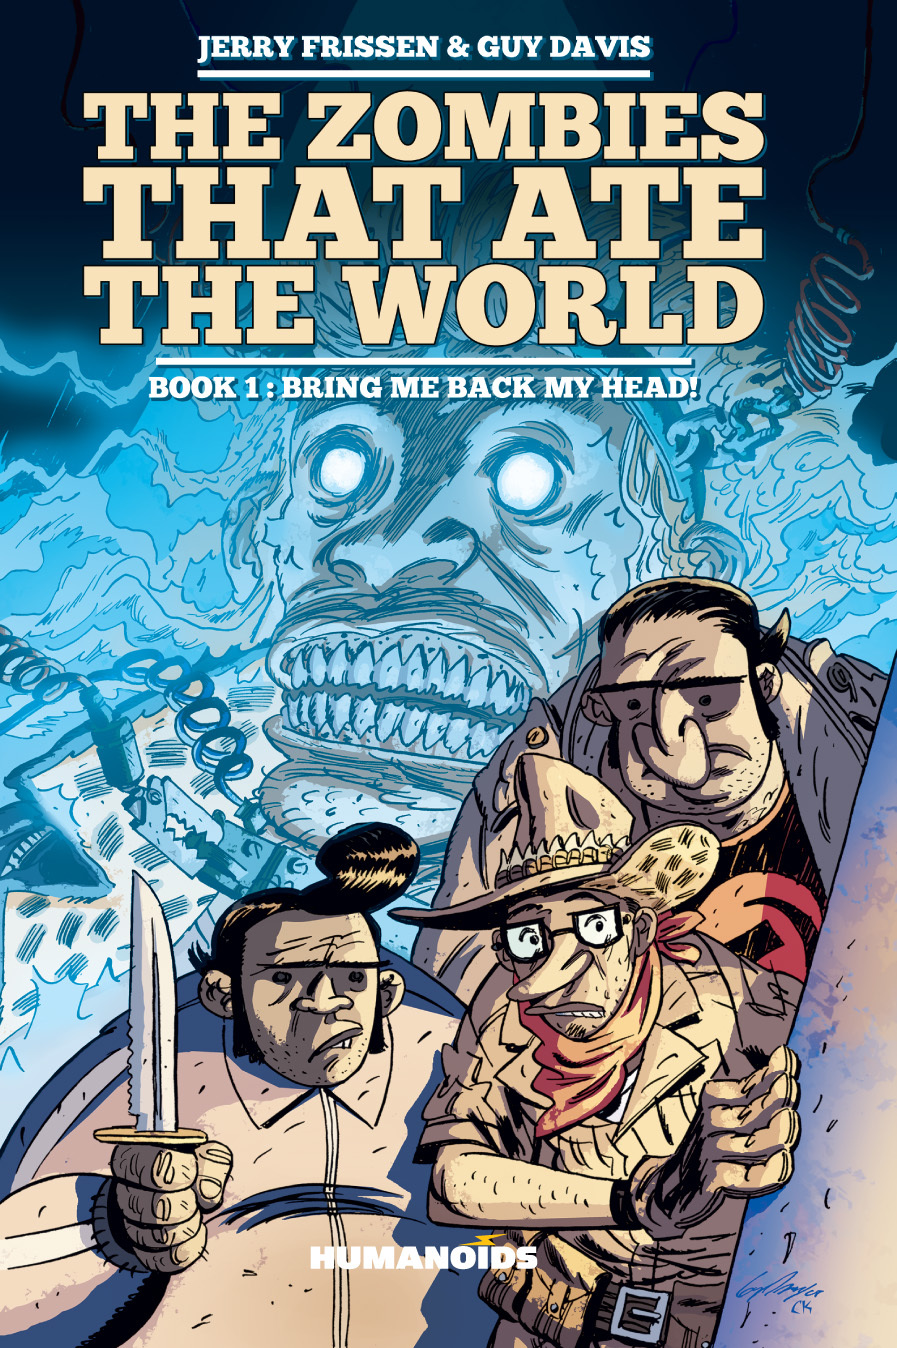 The Zombies that Ate the World - Hardcover Trade : Book 1: Bring me back my Head!